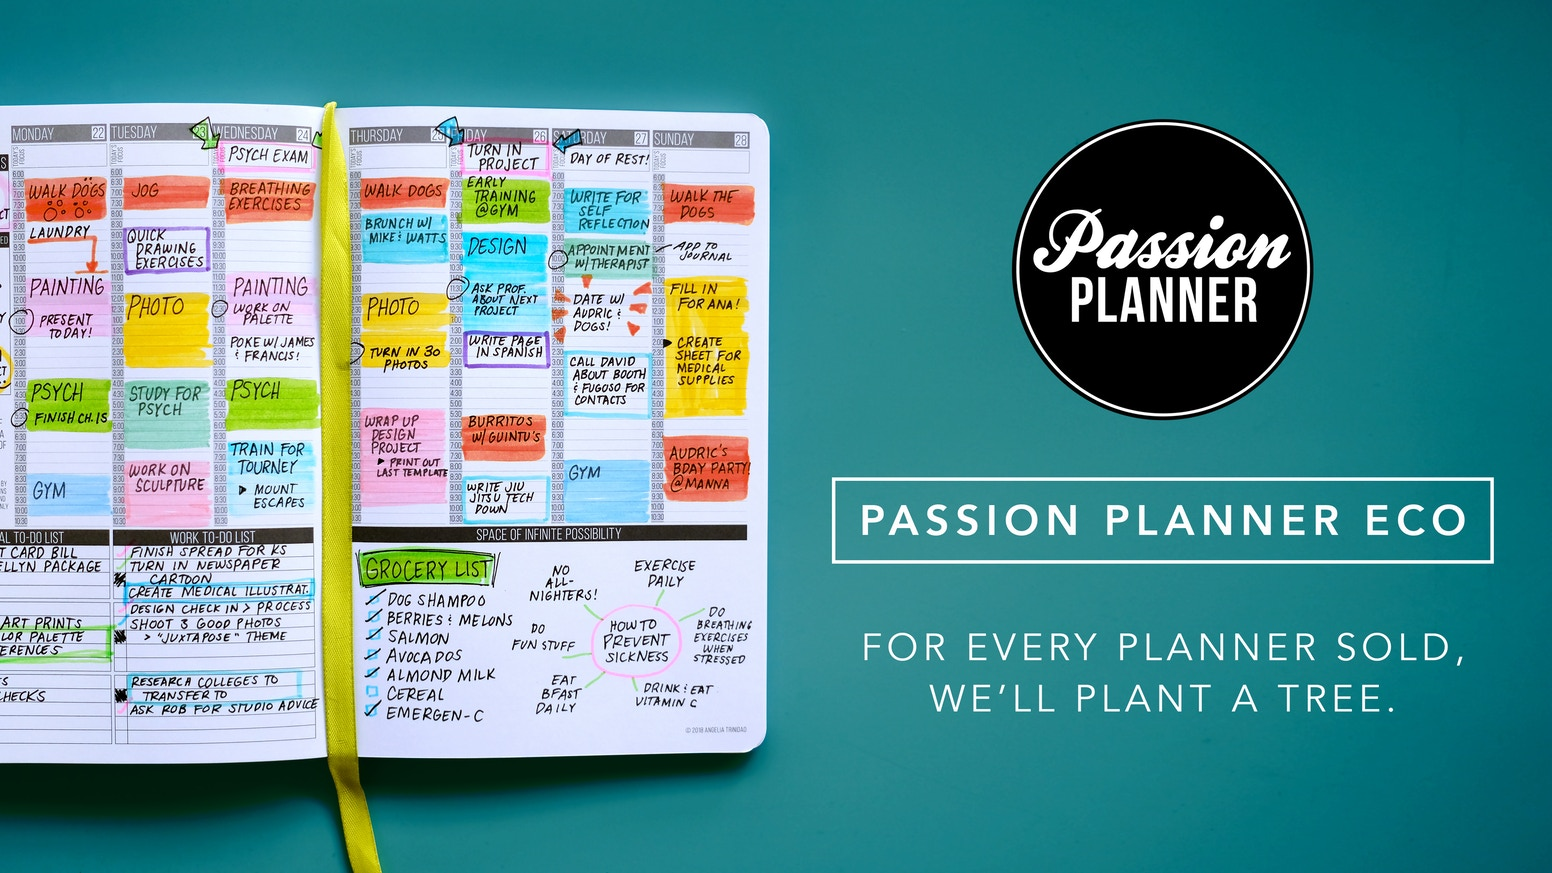 Redesigned with the planet in mind. For every planner we sell, we'll plant a tree.